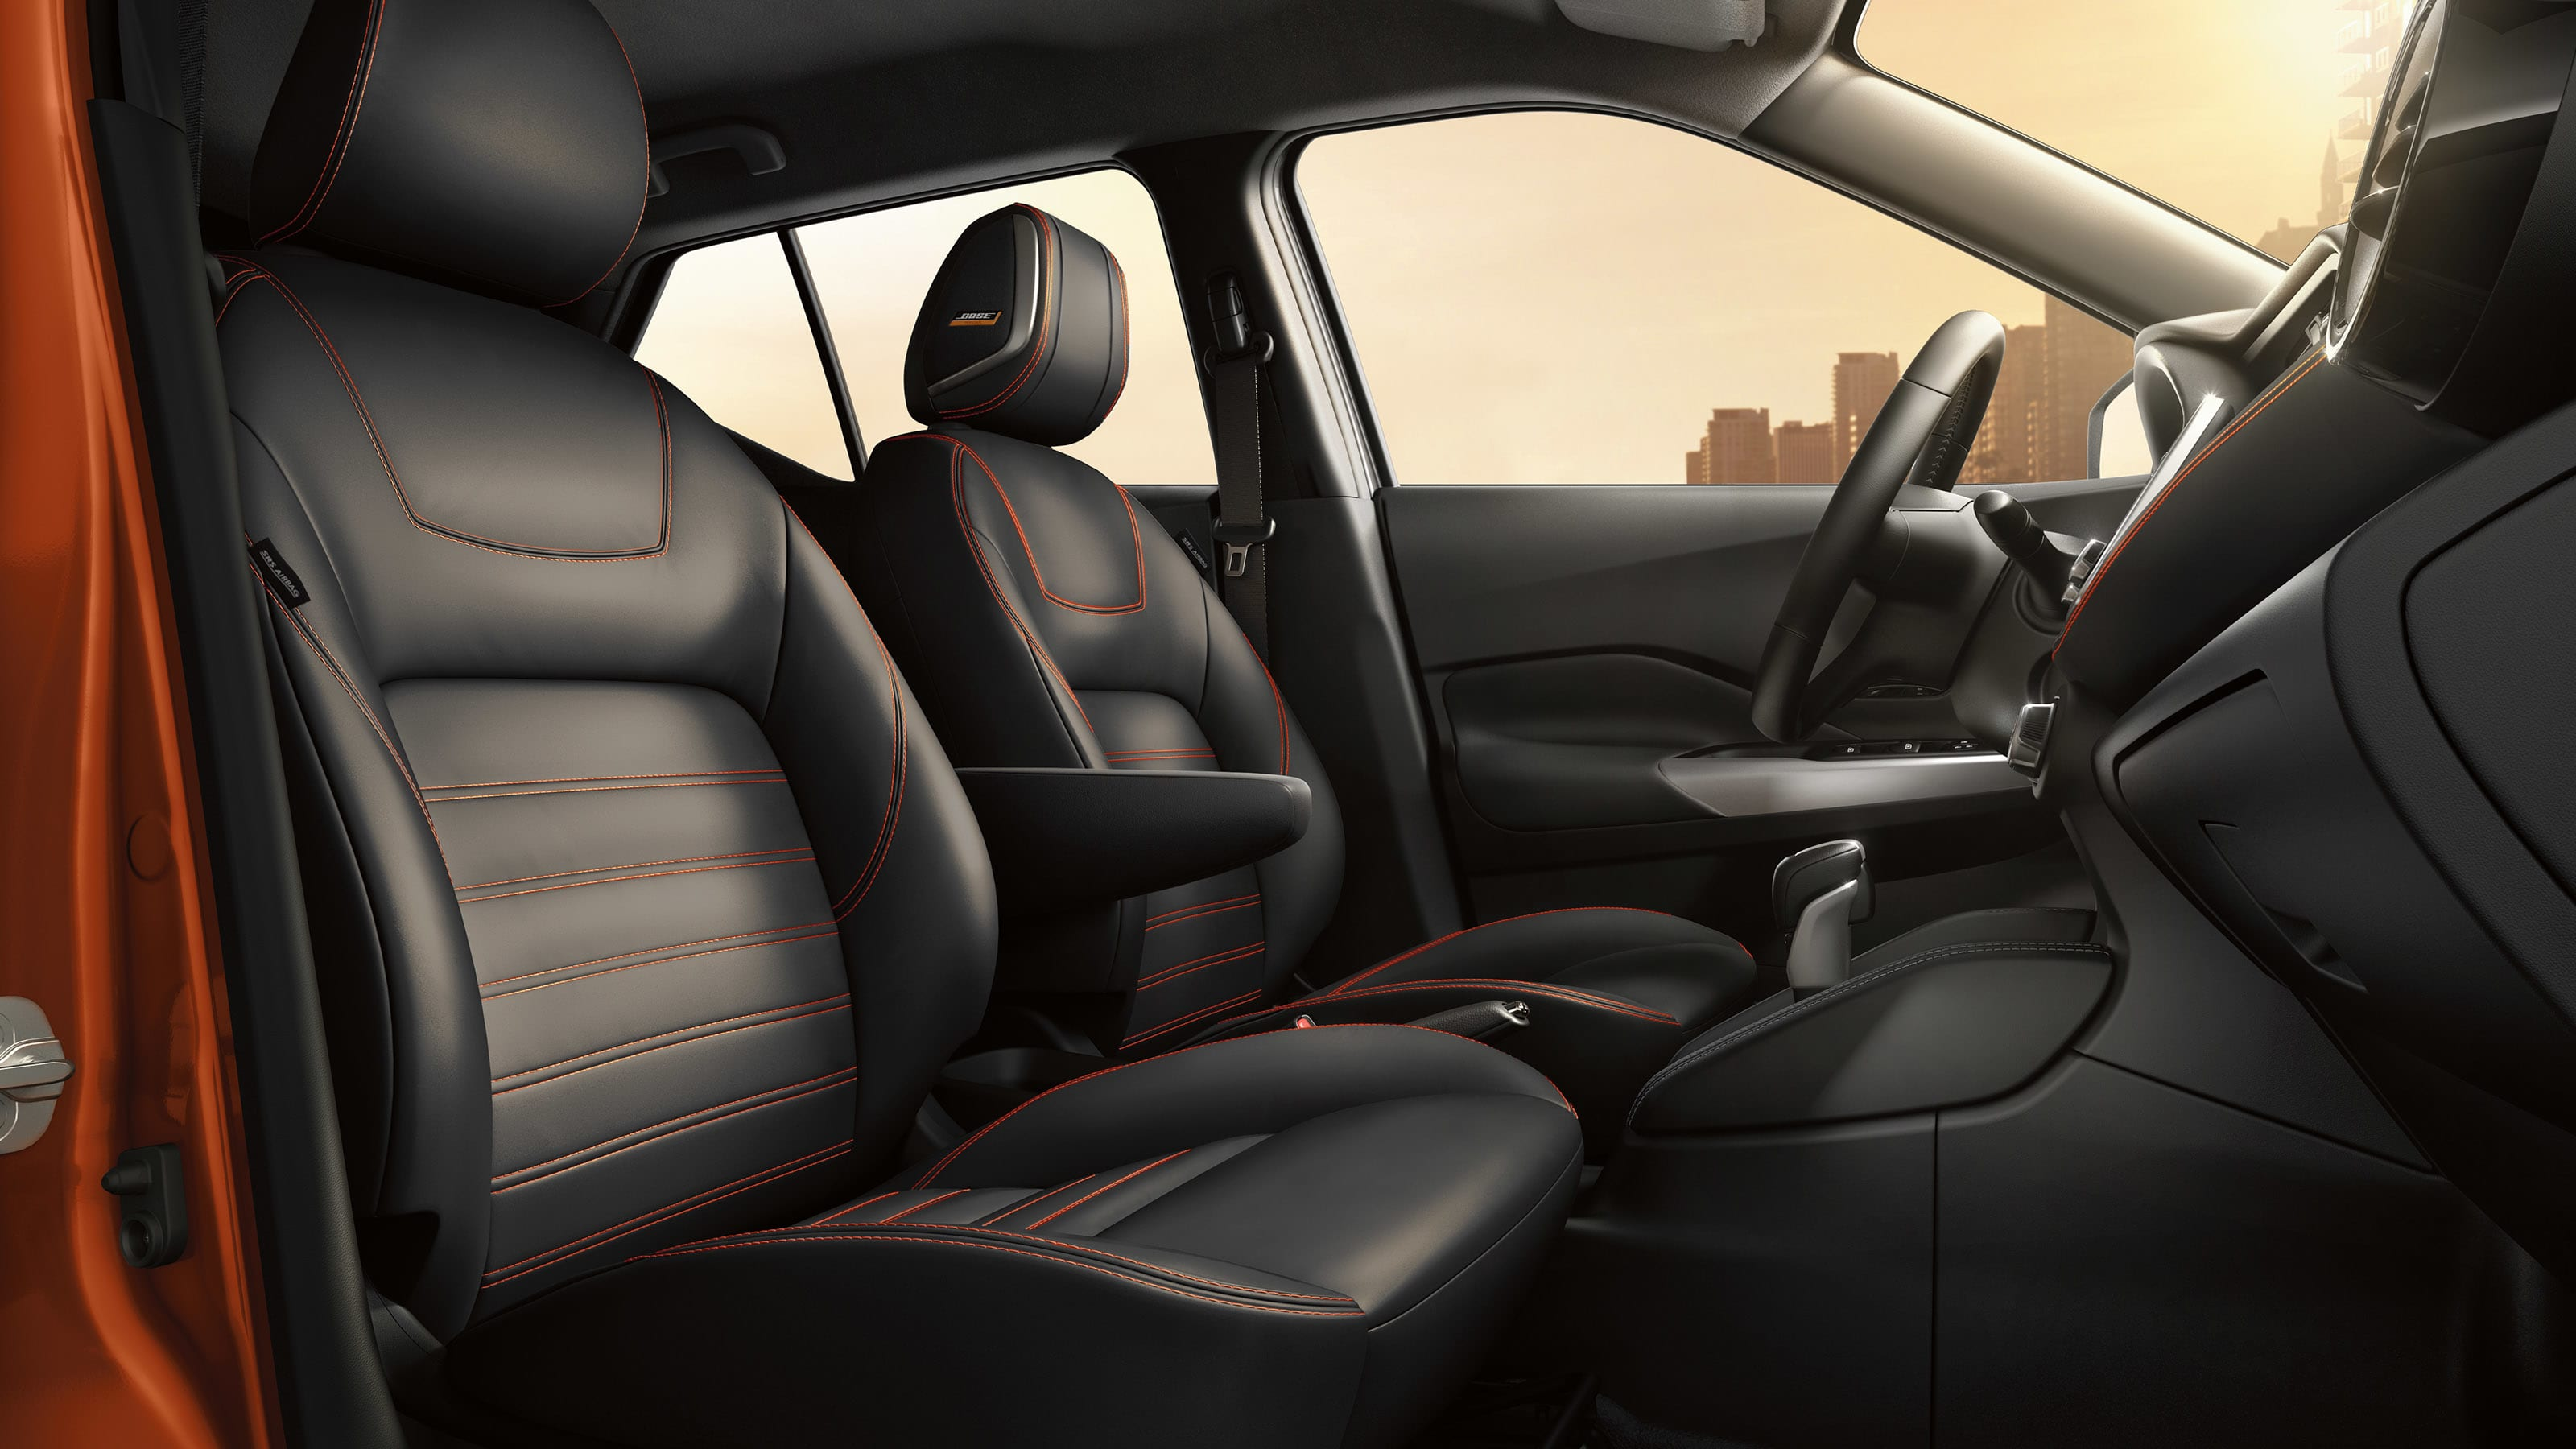 Interior of the 2019 Nissan Kicks